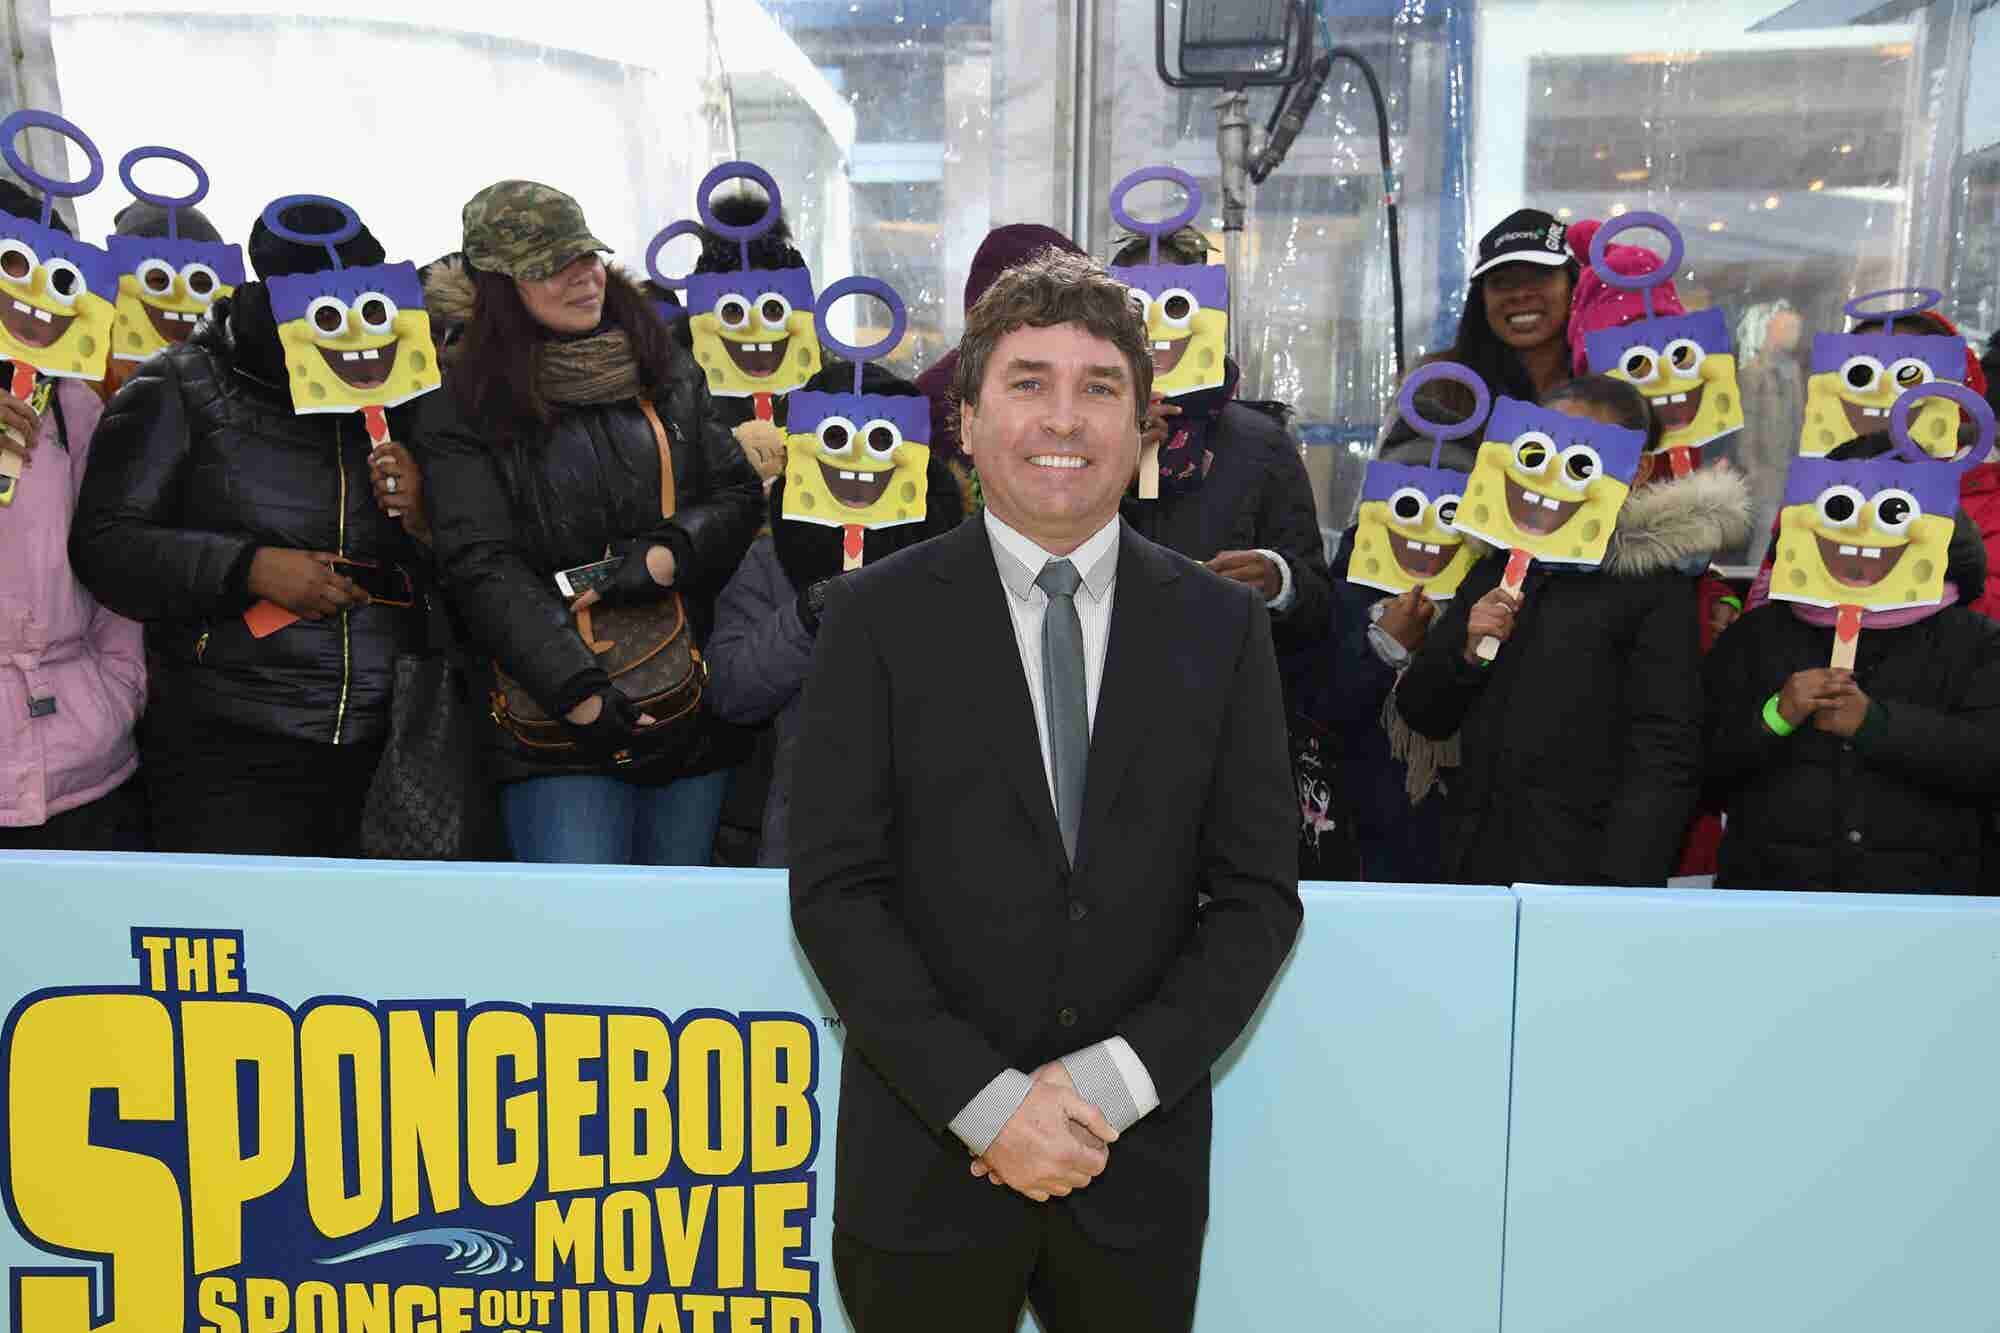 'Spongebob Squarepants' Creator Stephen Hillenburg Dead at 57